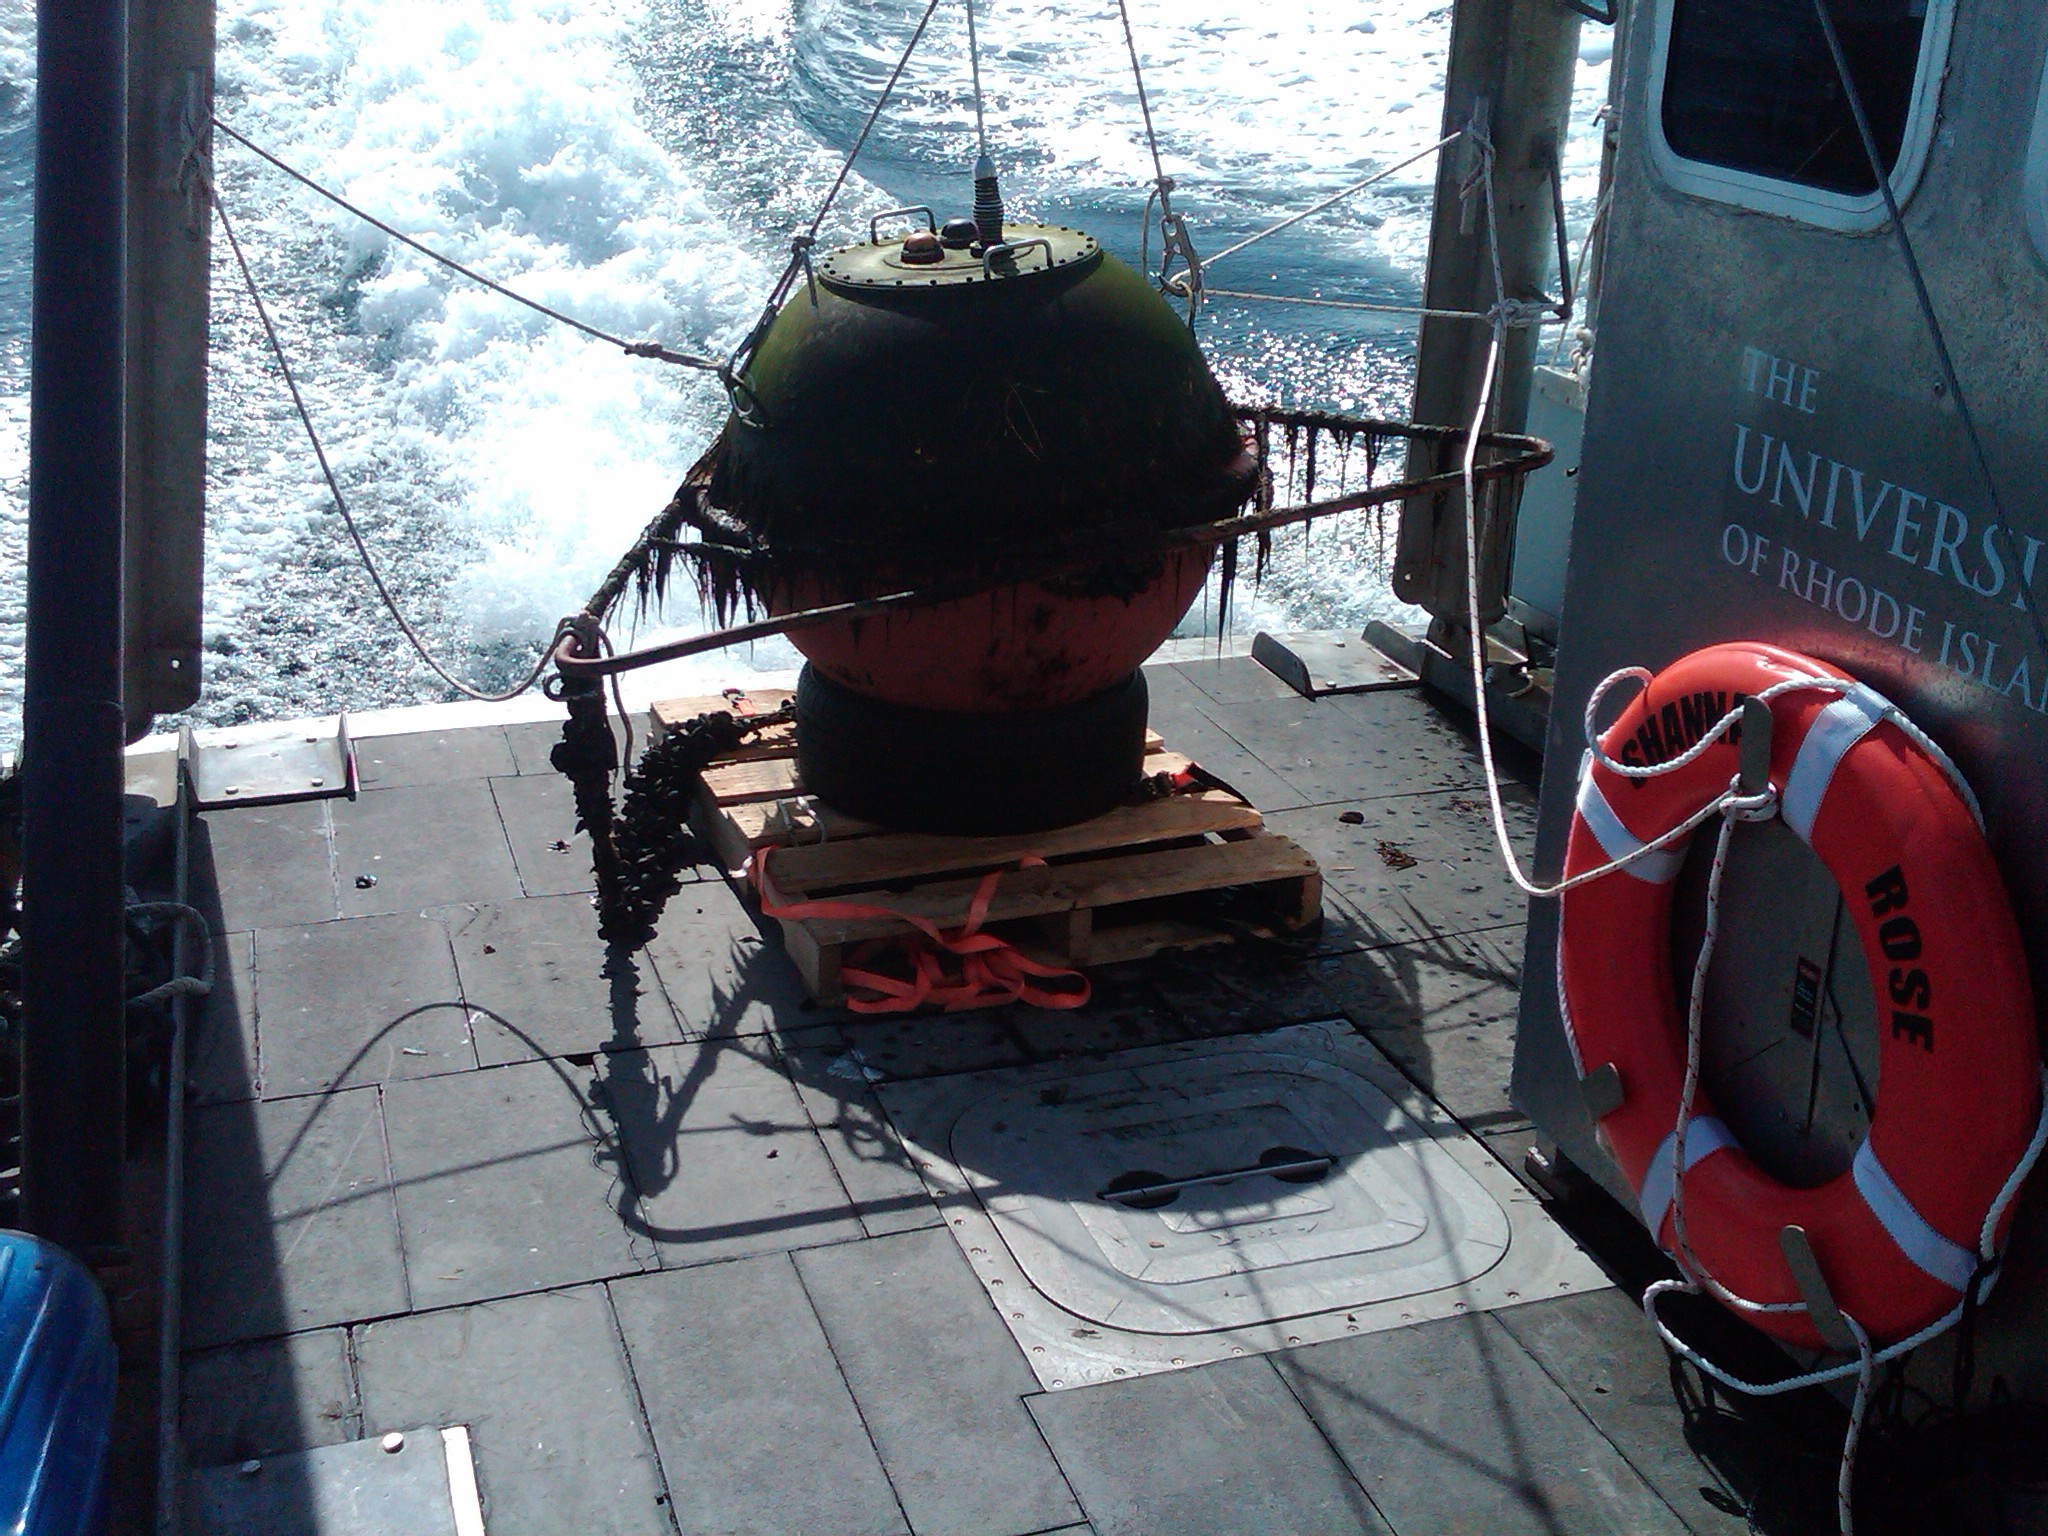 Buoy recently recovered